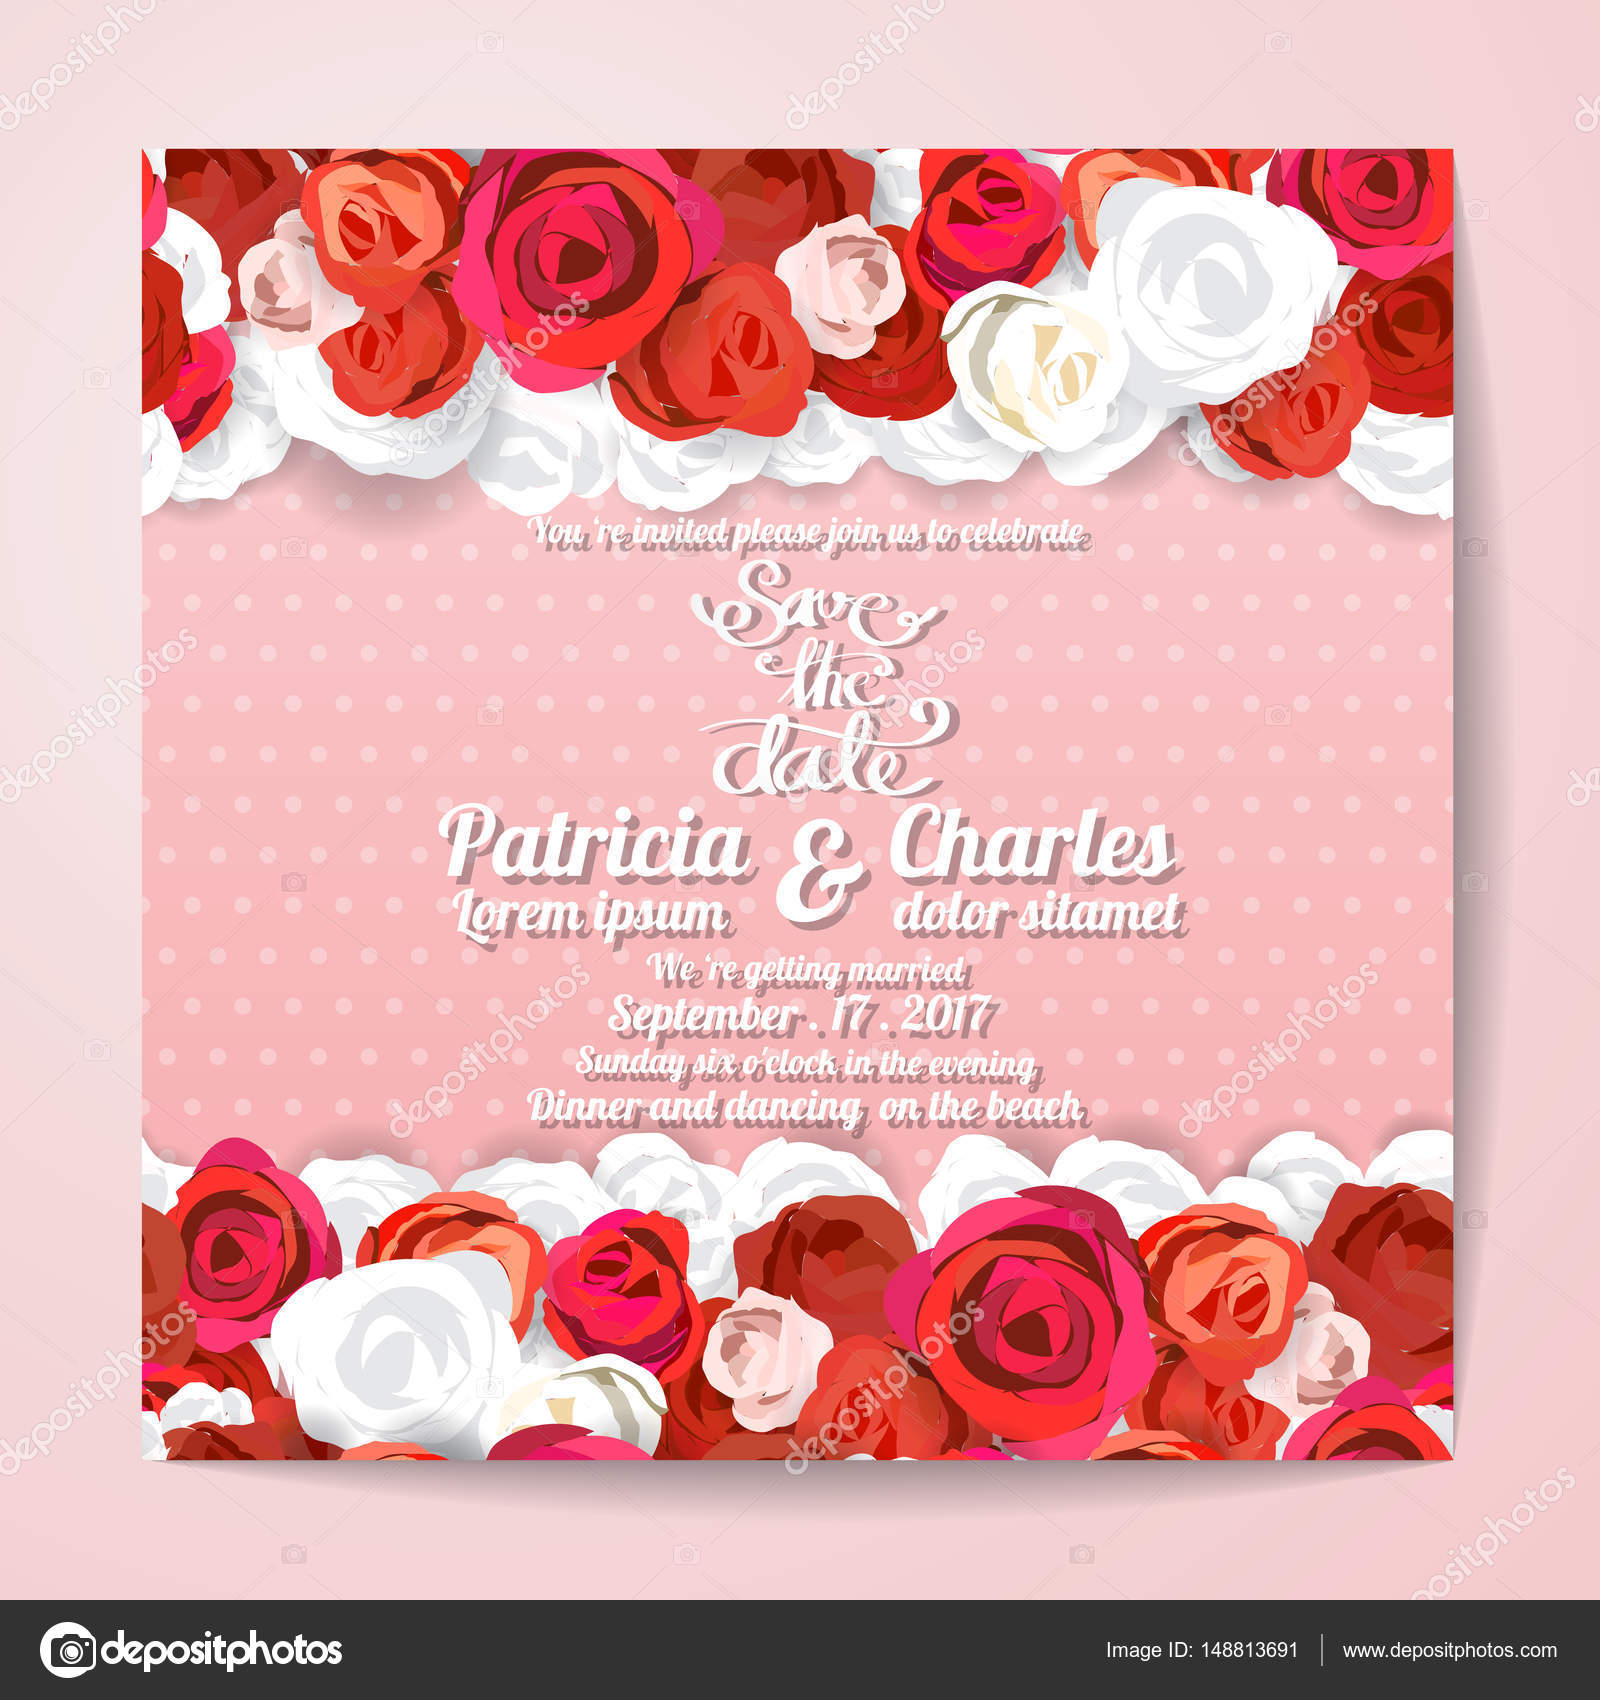 Wedding invitation card templates, Flower rose blossom on pink d ...